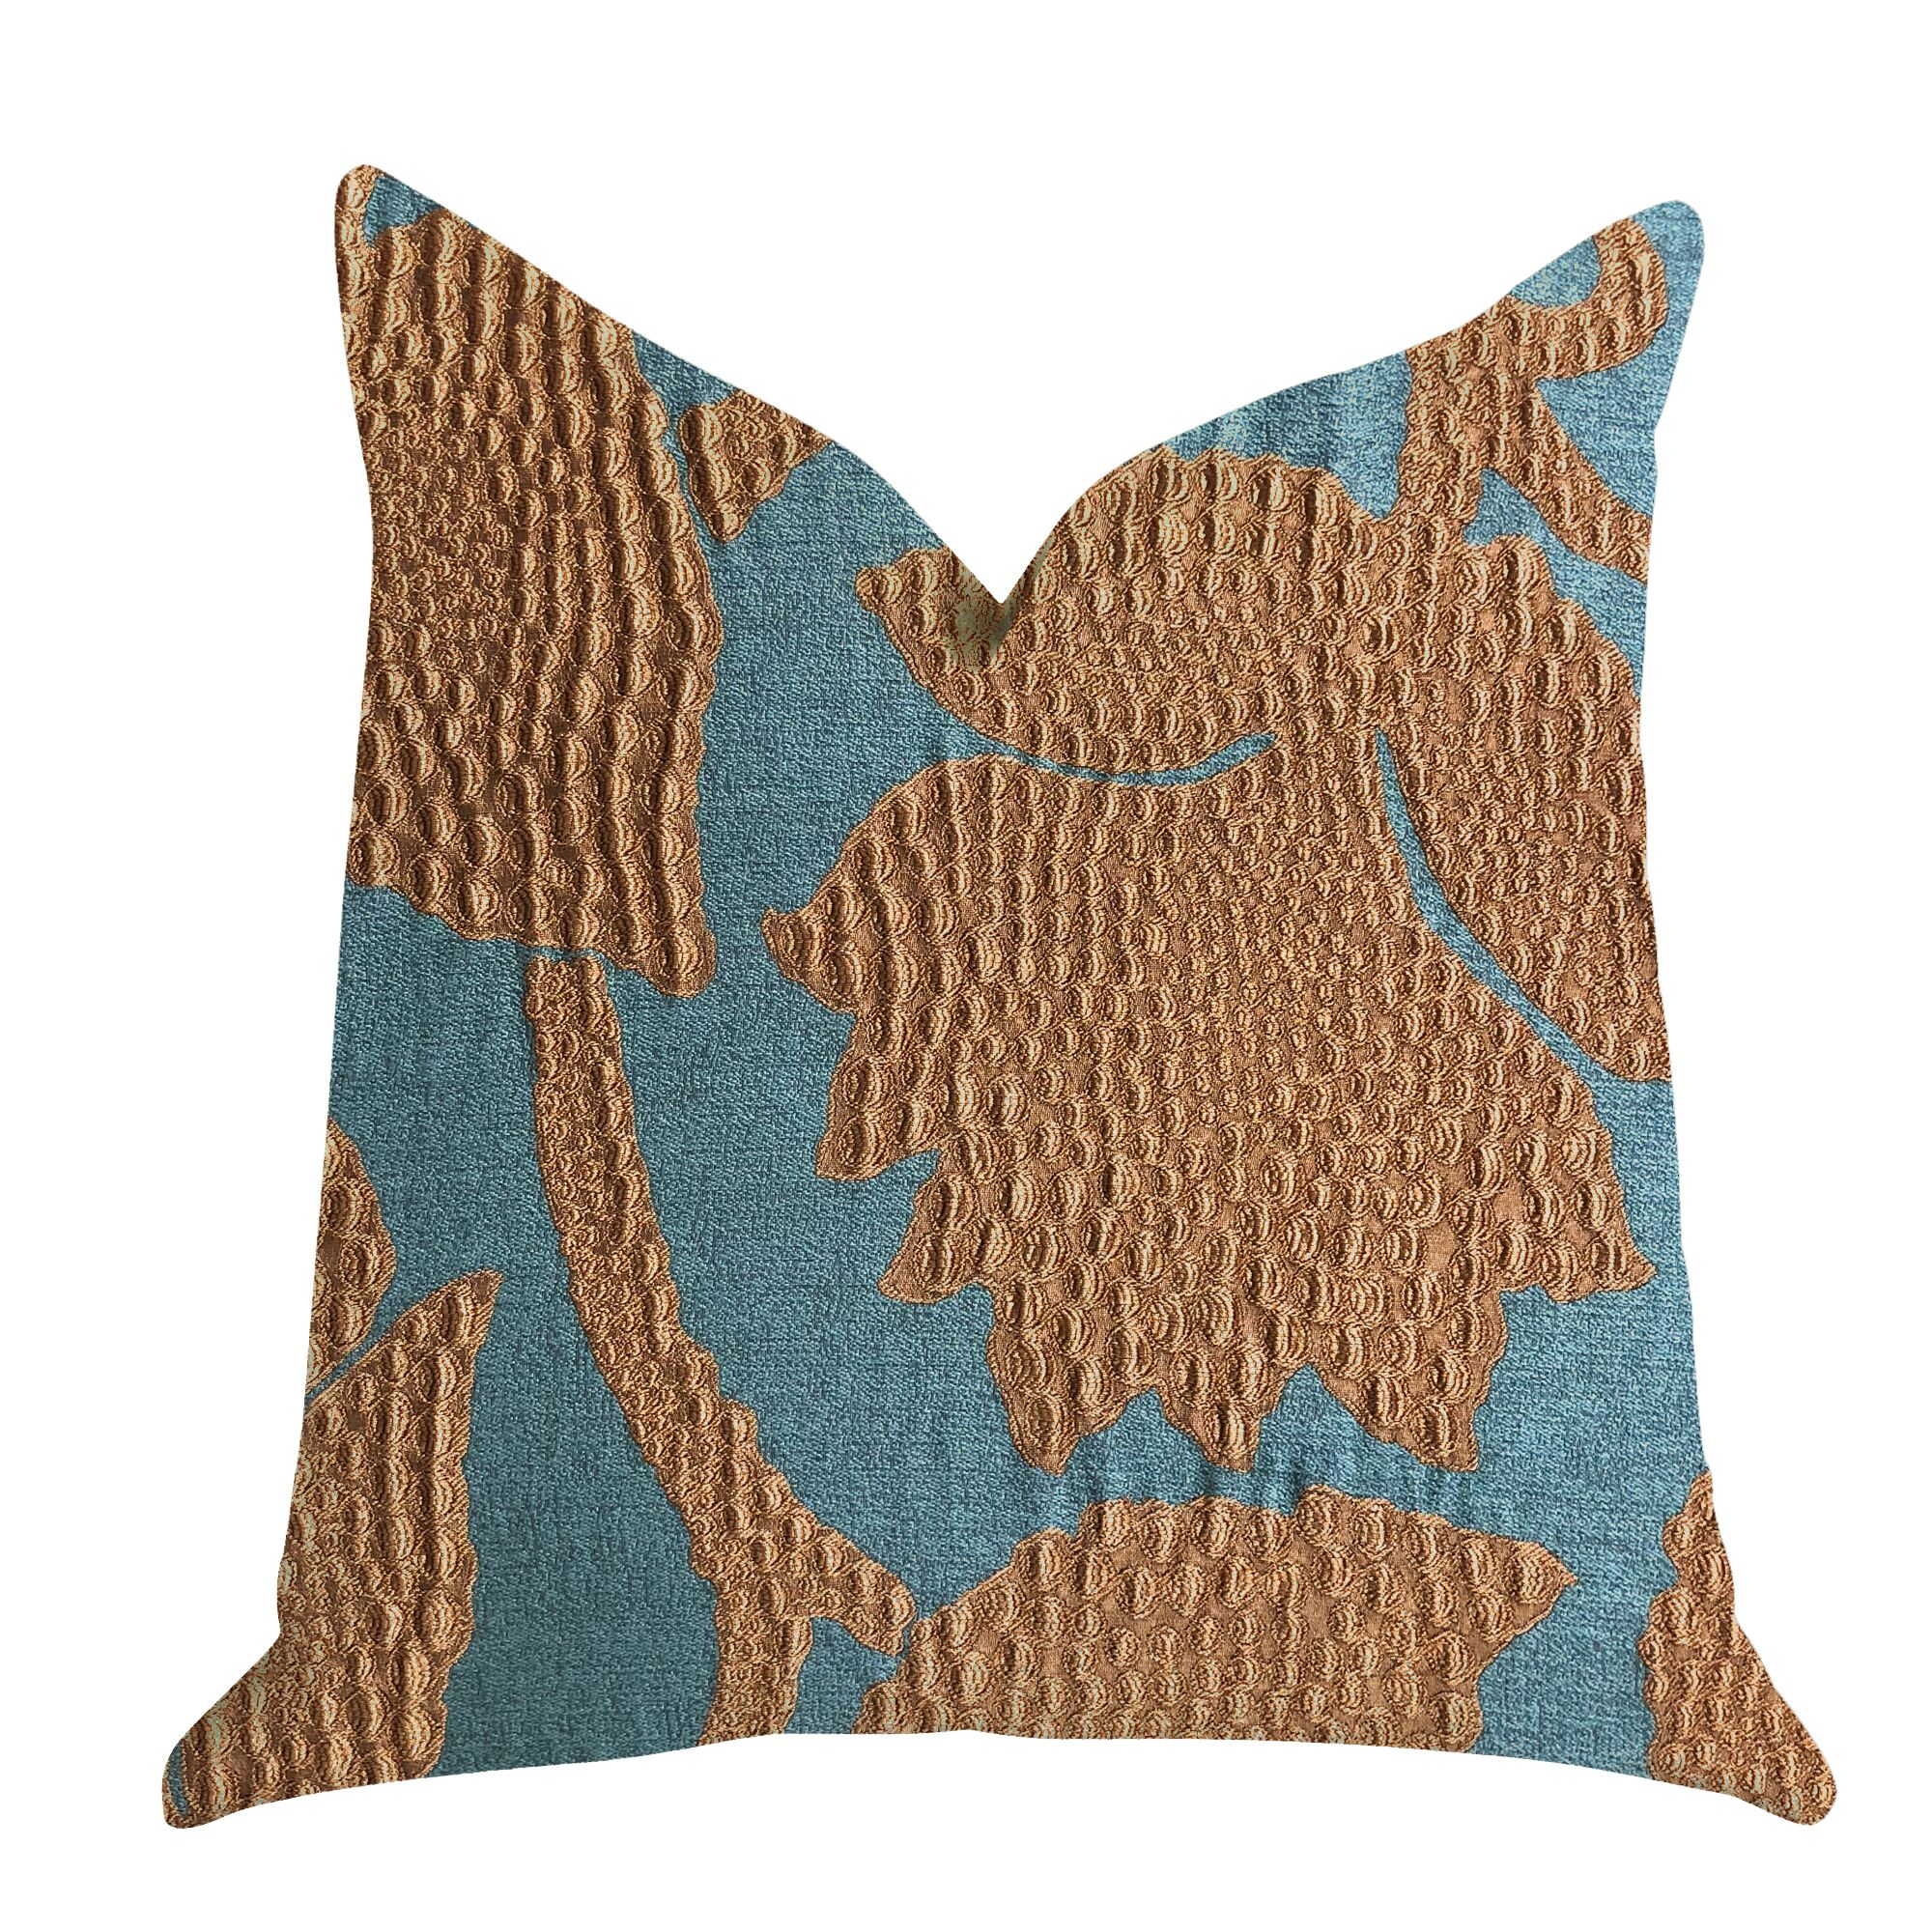 Embellish your couch with this beautiful striking accent vine in green and gold luxury pillow . Features: -Handmade in the USA.-Double sided pillow.-Invisible zipper enclosure for a tailored look.-All seams are over-locked and stitched for a professio...